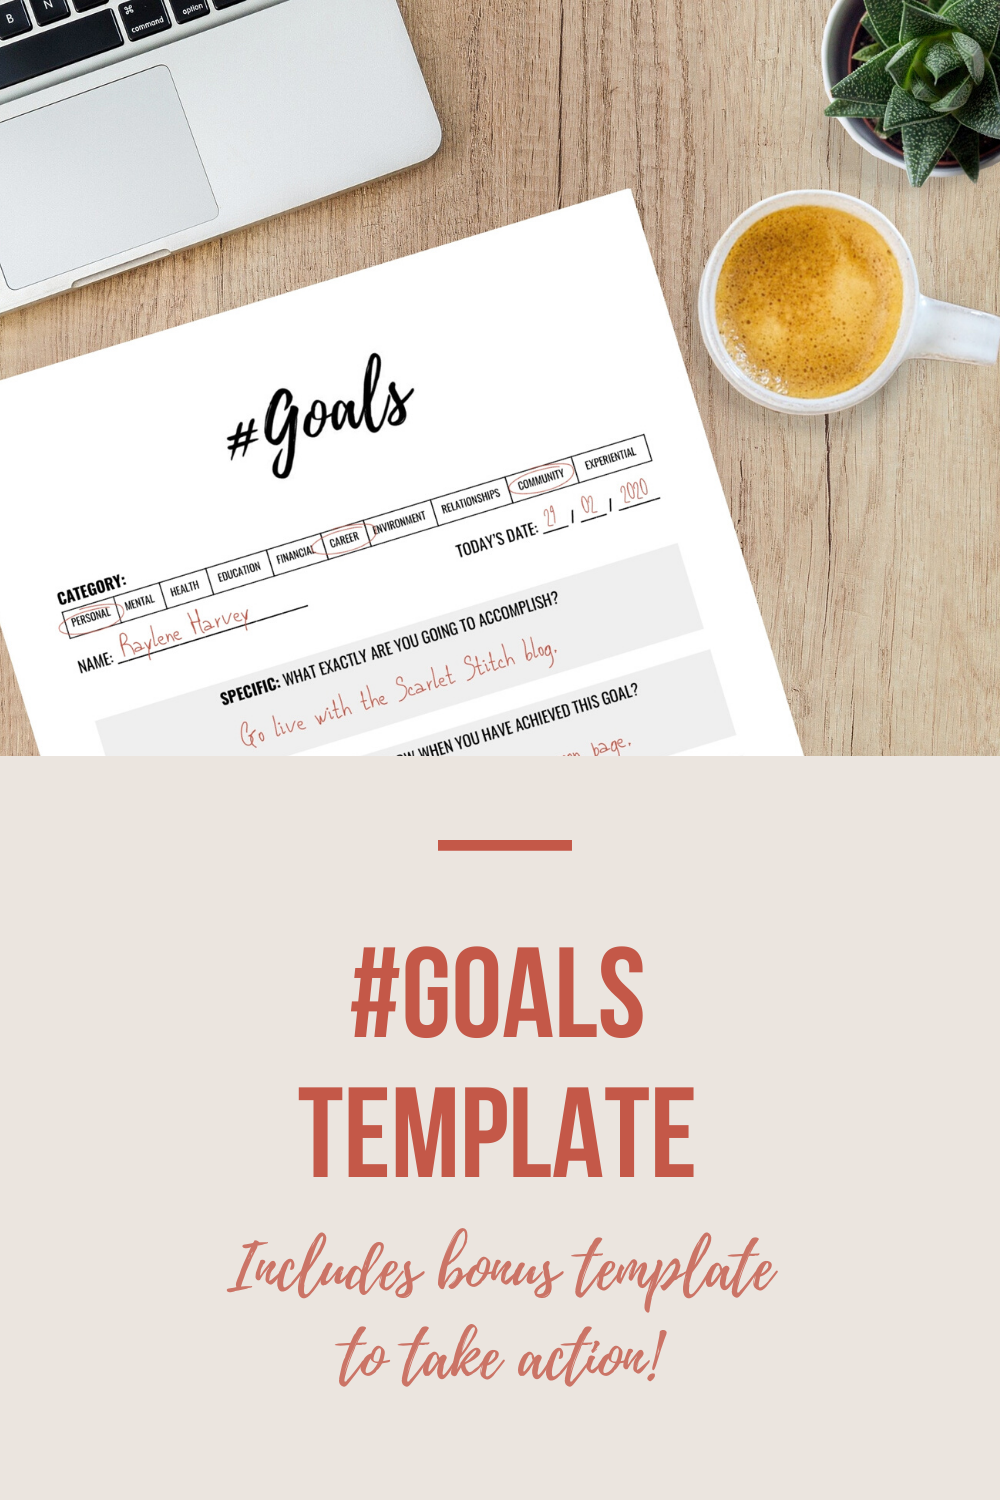 #Goals Template | Scarlet Stitch